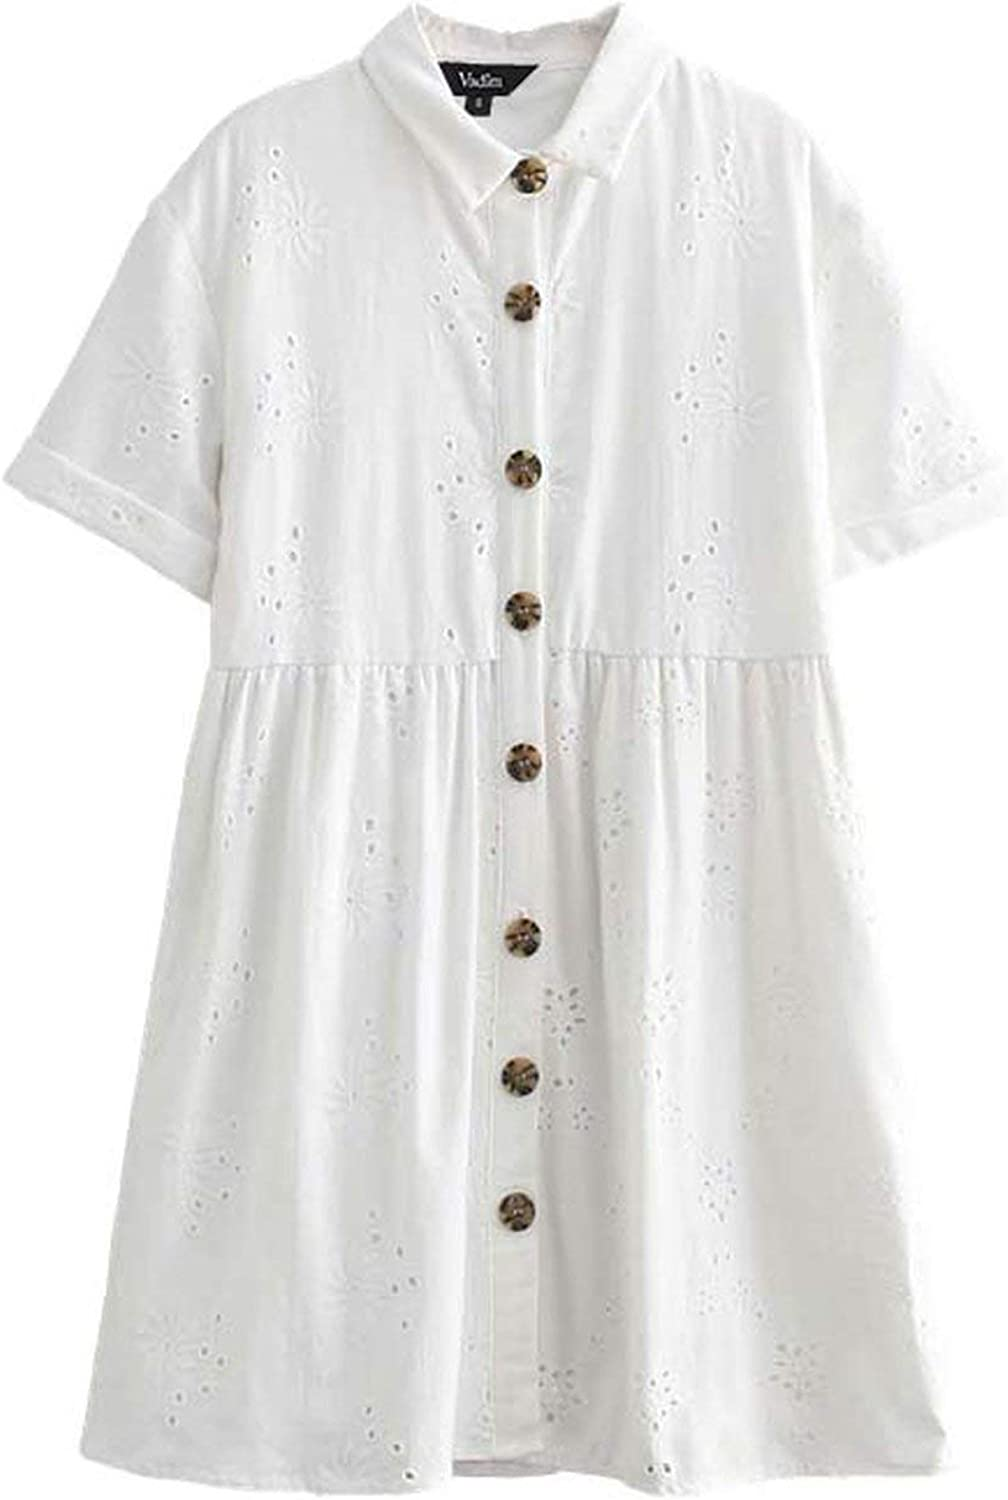 Women Embroidery Hollow Out Mini Dress Short Sleeve Turn Down Collar White Sweet Casual Shirt Dresses